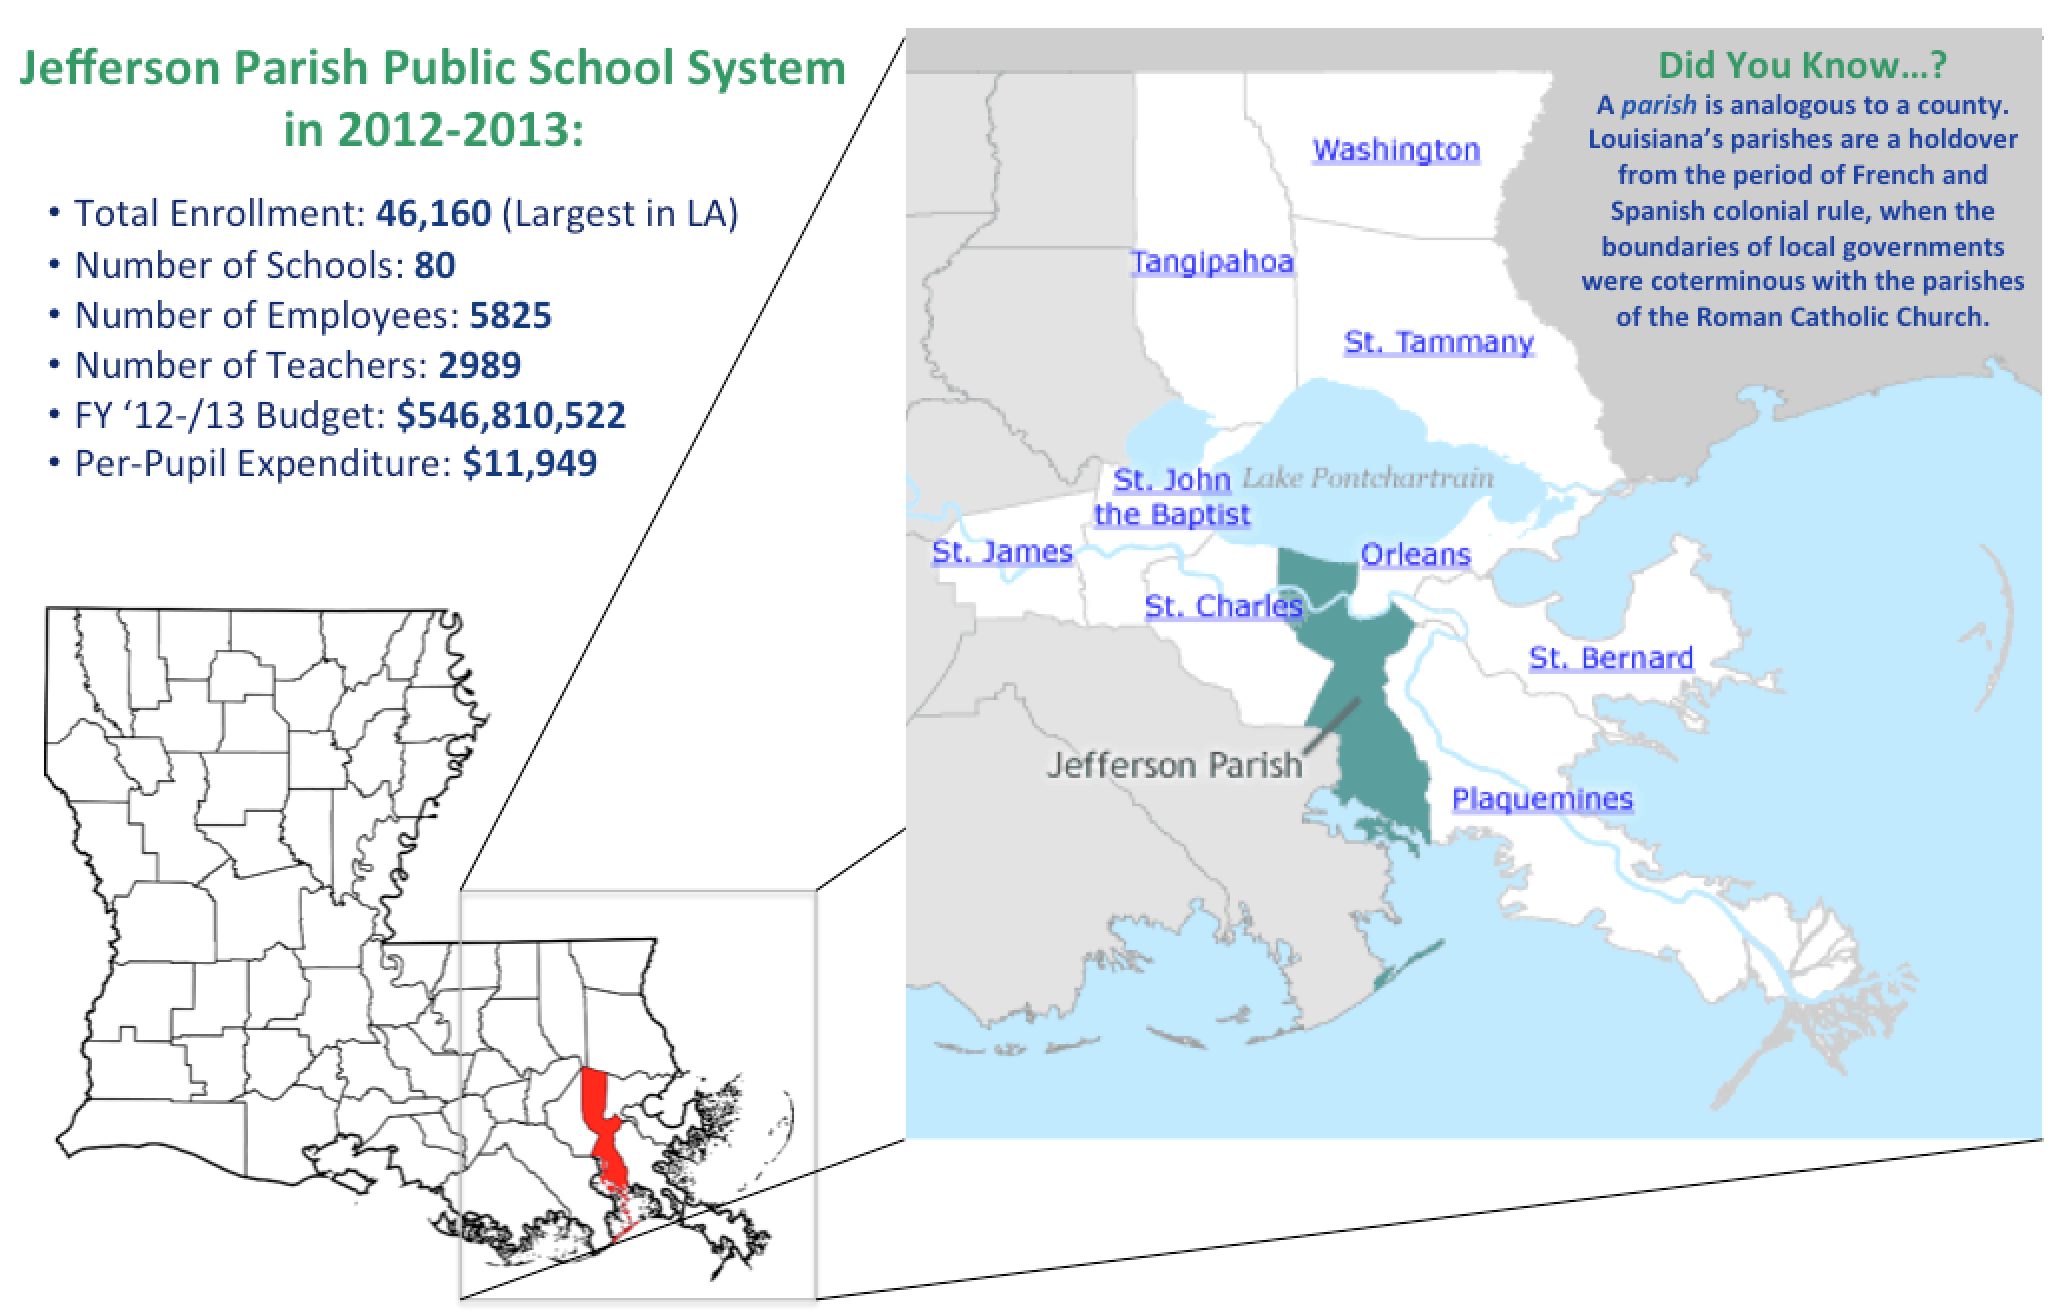 Jefferson Parish Public Schools Overview